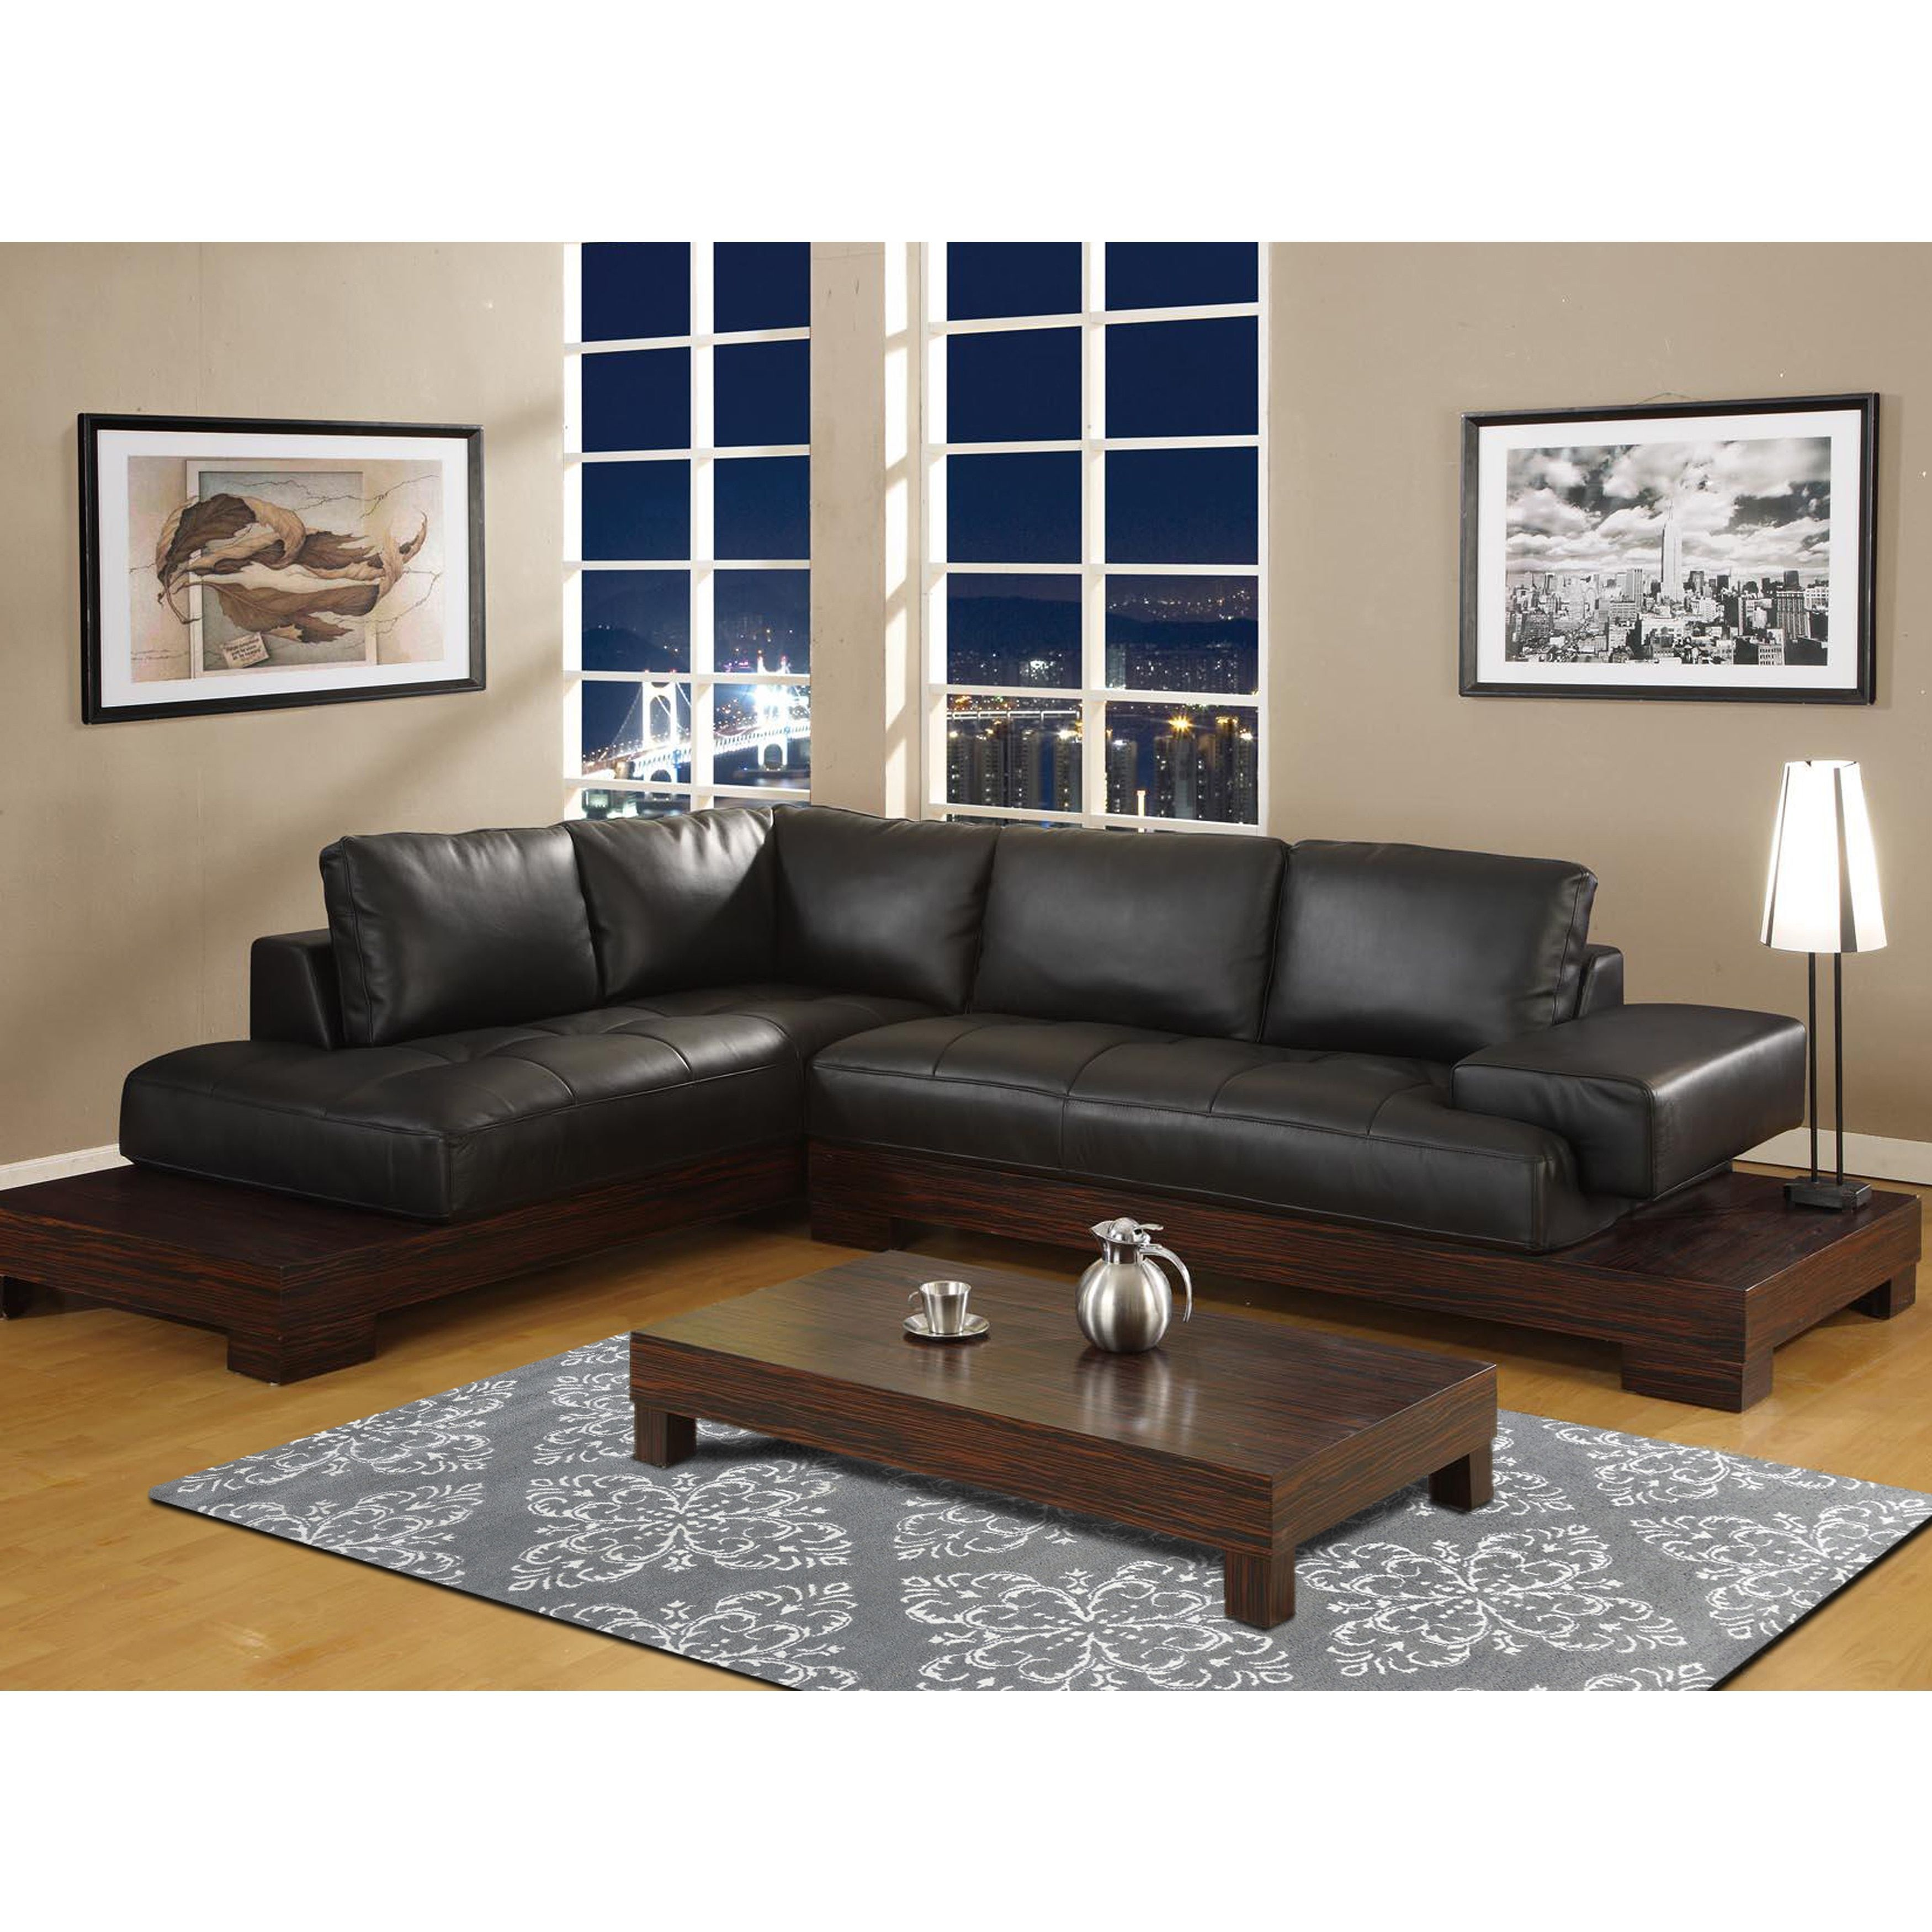 hand-tufted saint thomas steel blue blended new zealand wool and